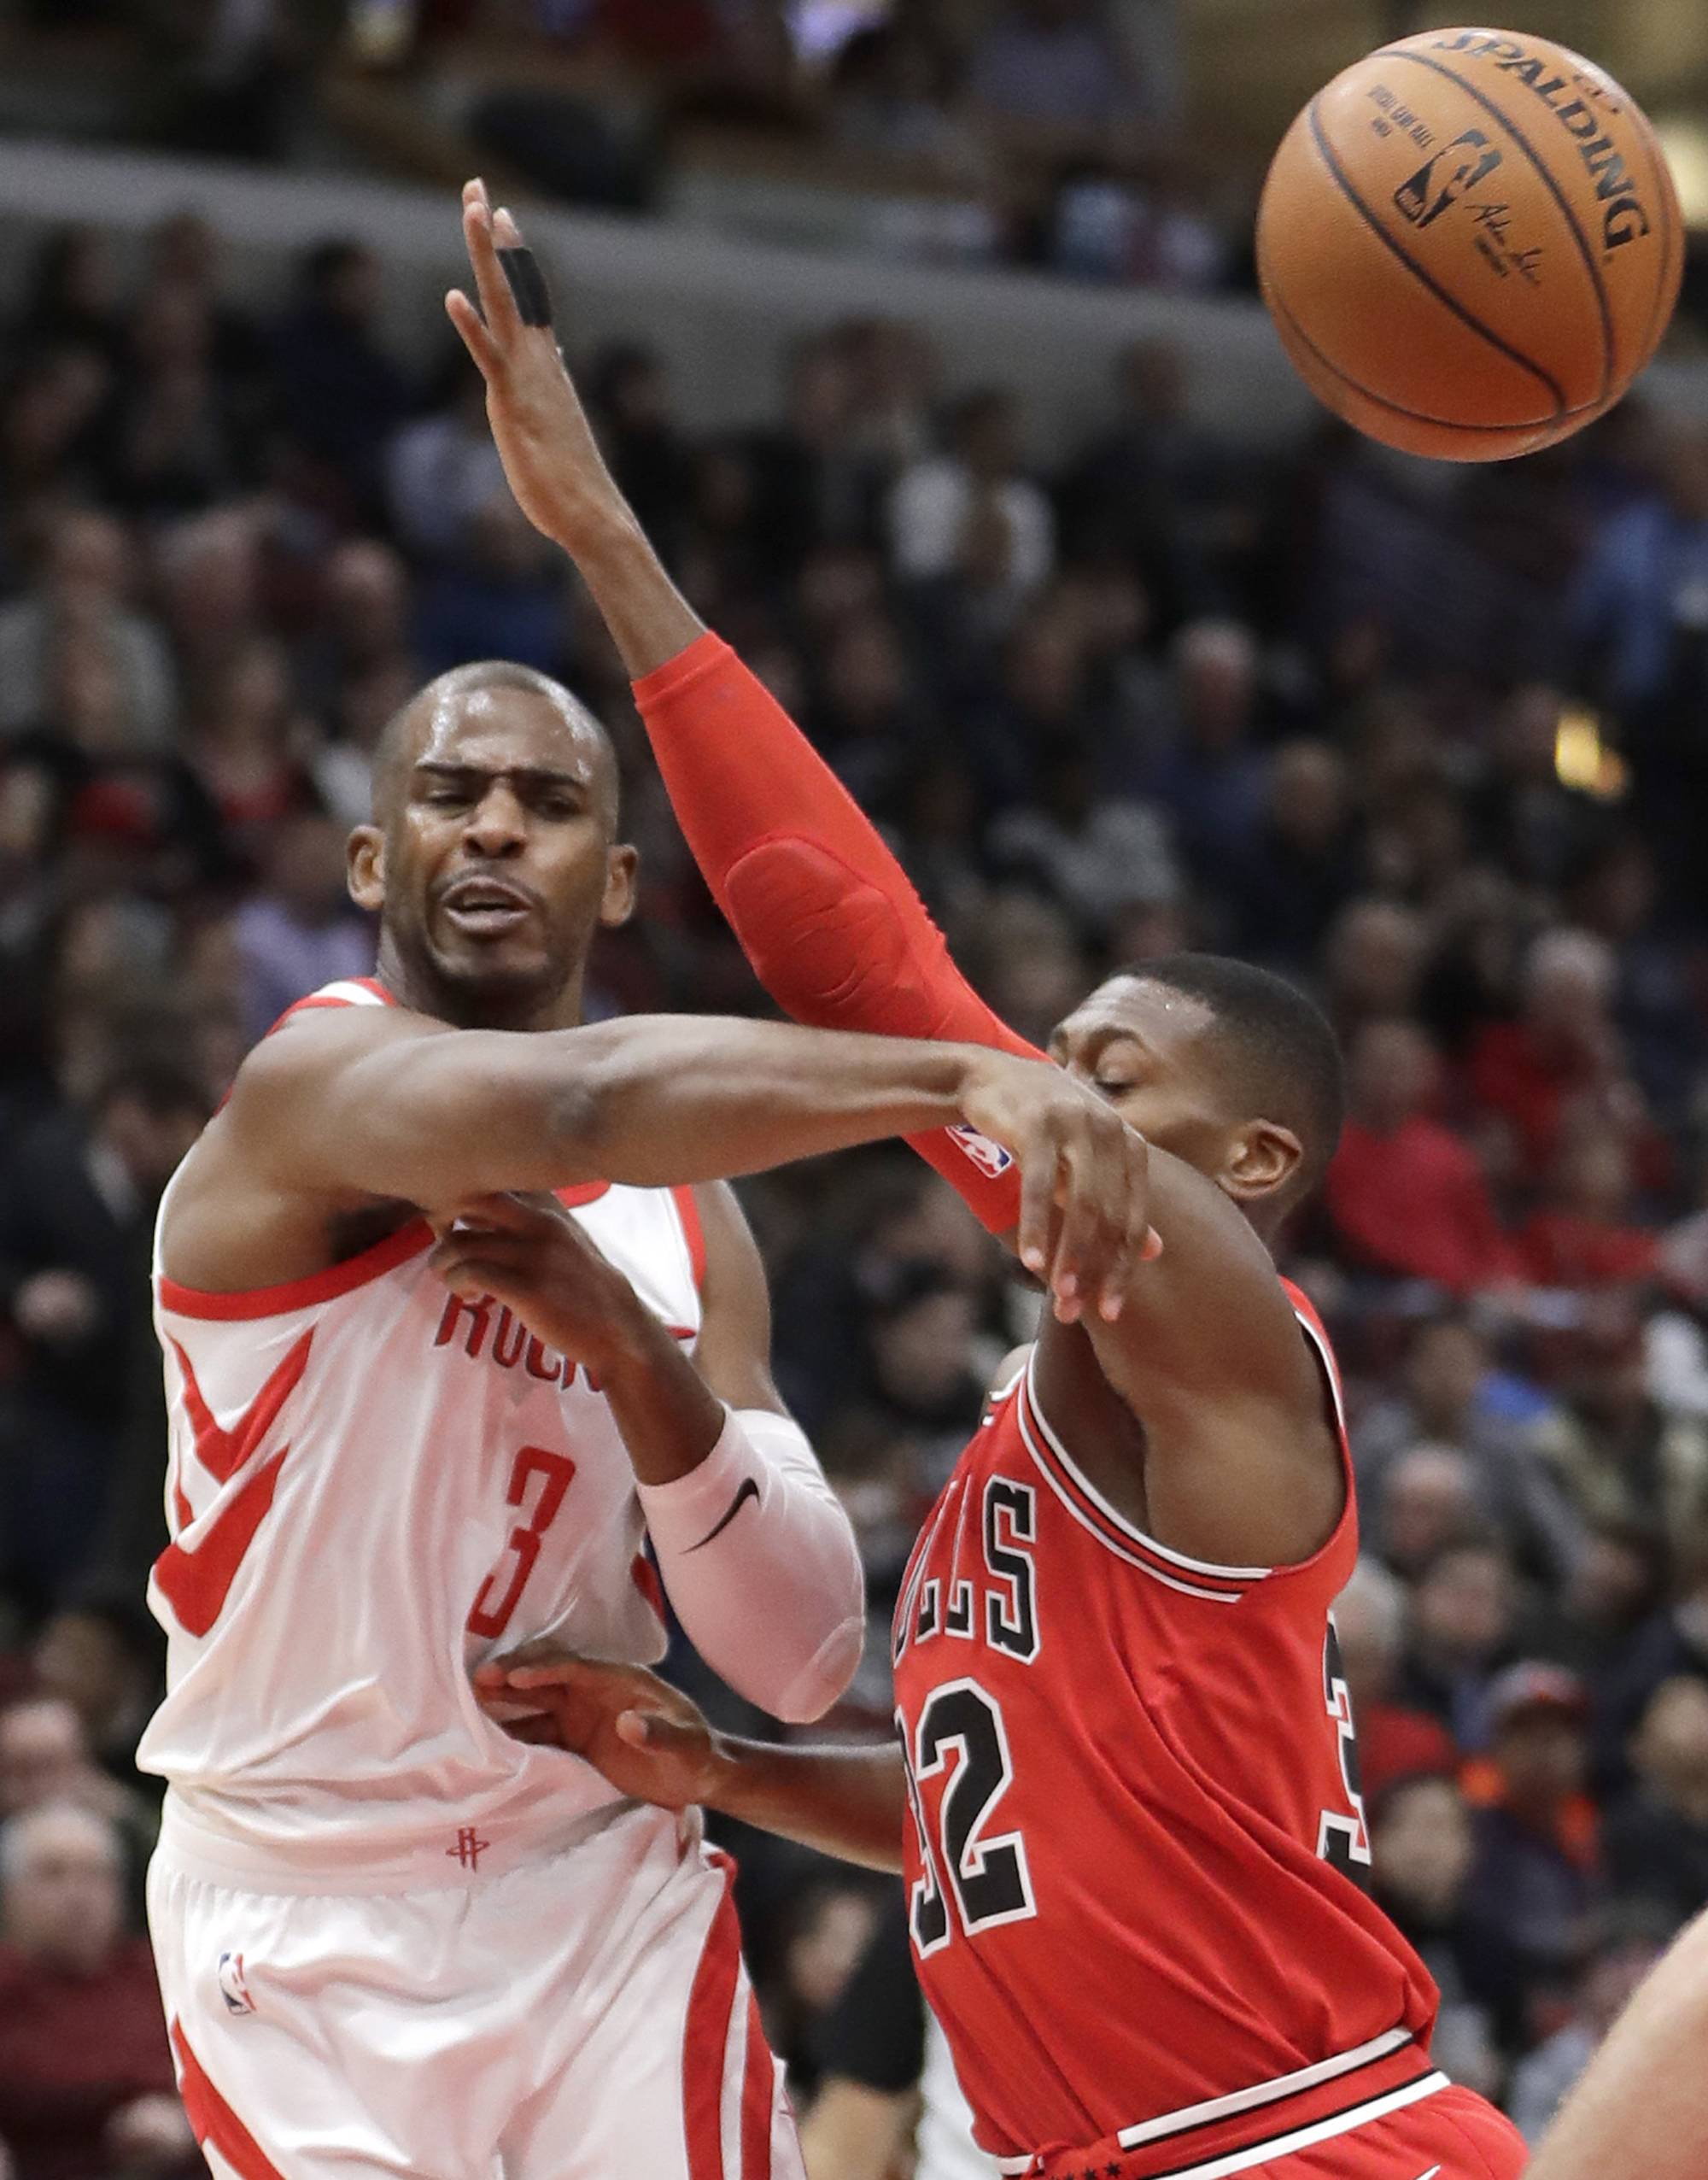 Chicago Bulls' struggling defense no match for Rockets' long-range game